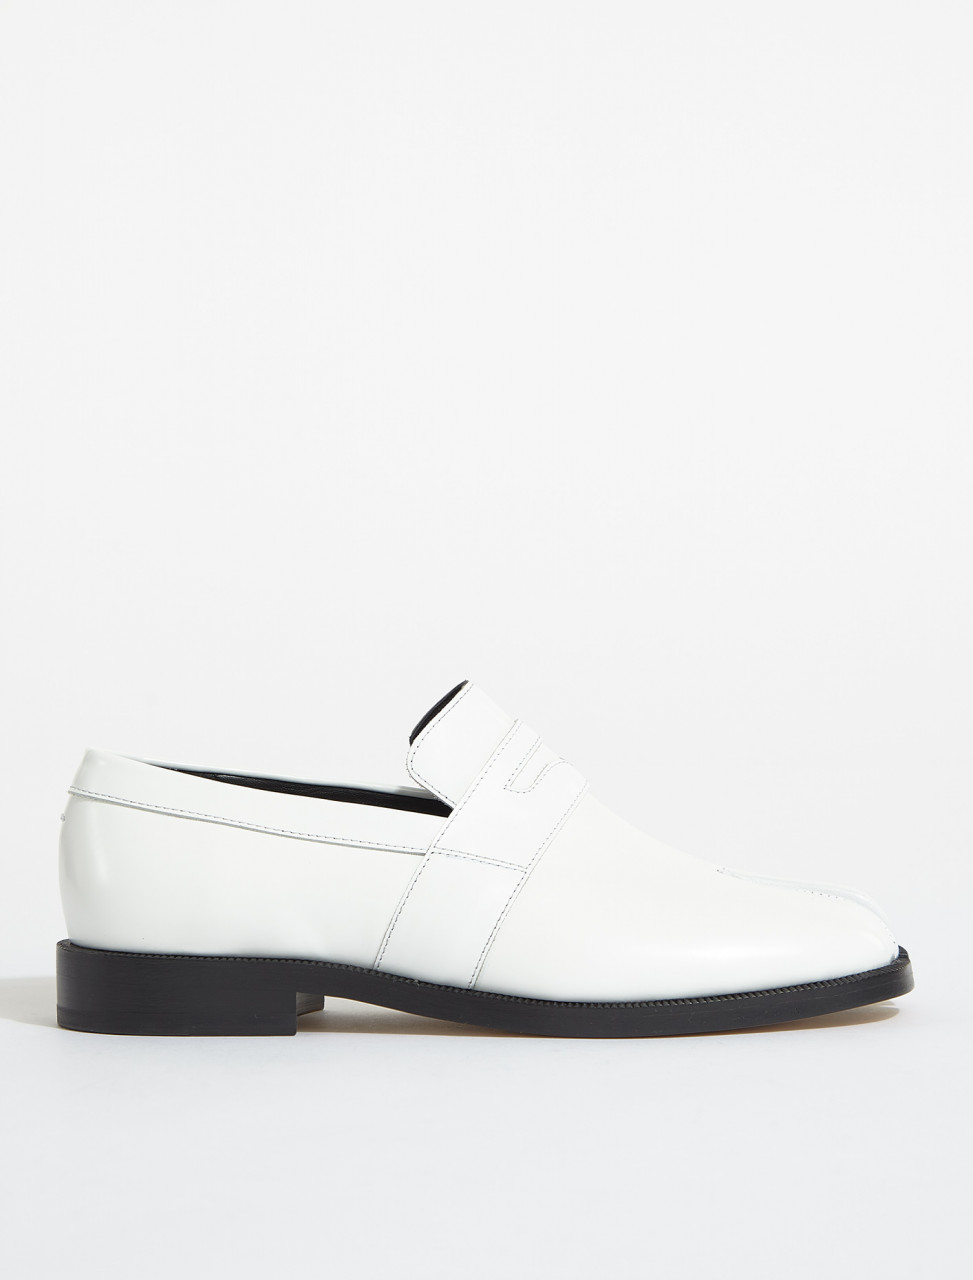 S58WR0035-PS679-T1003 MAISON MARGIELA TABI LEATHER LOAFER IN WHITE